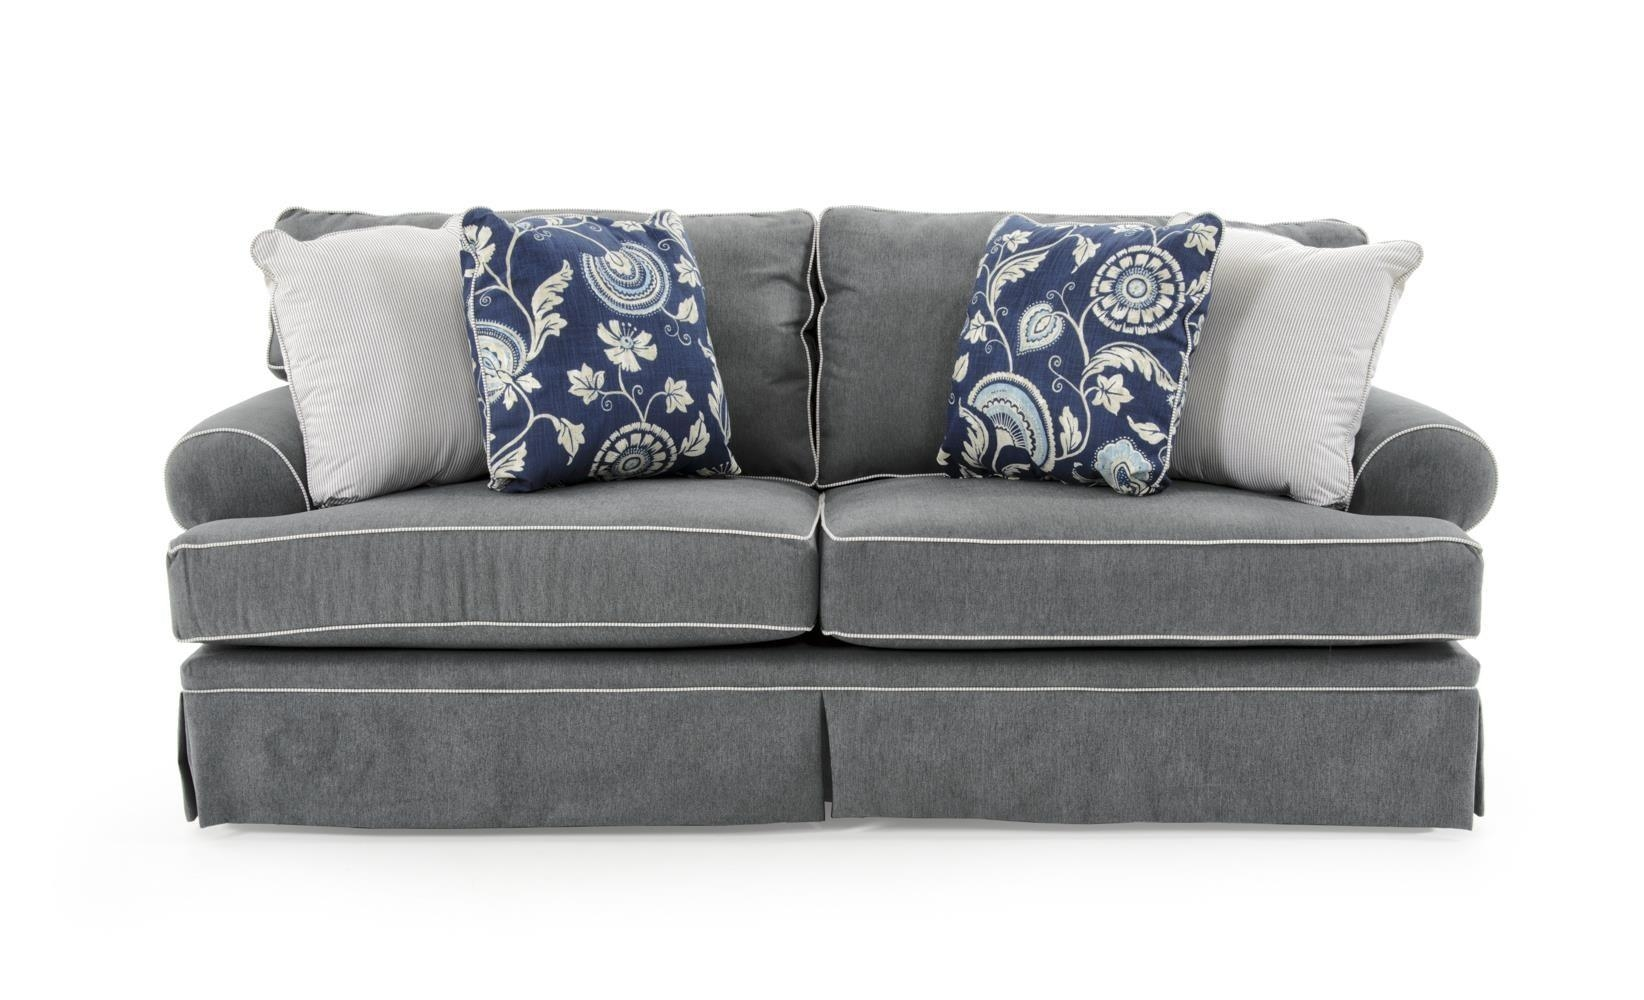 Broyhill Furniture Emily Casual Style Sofa With Rolled Arms And Pertaining To Broyhill Emily Sofas (Image 8 of 20)